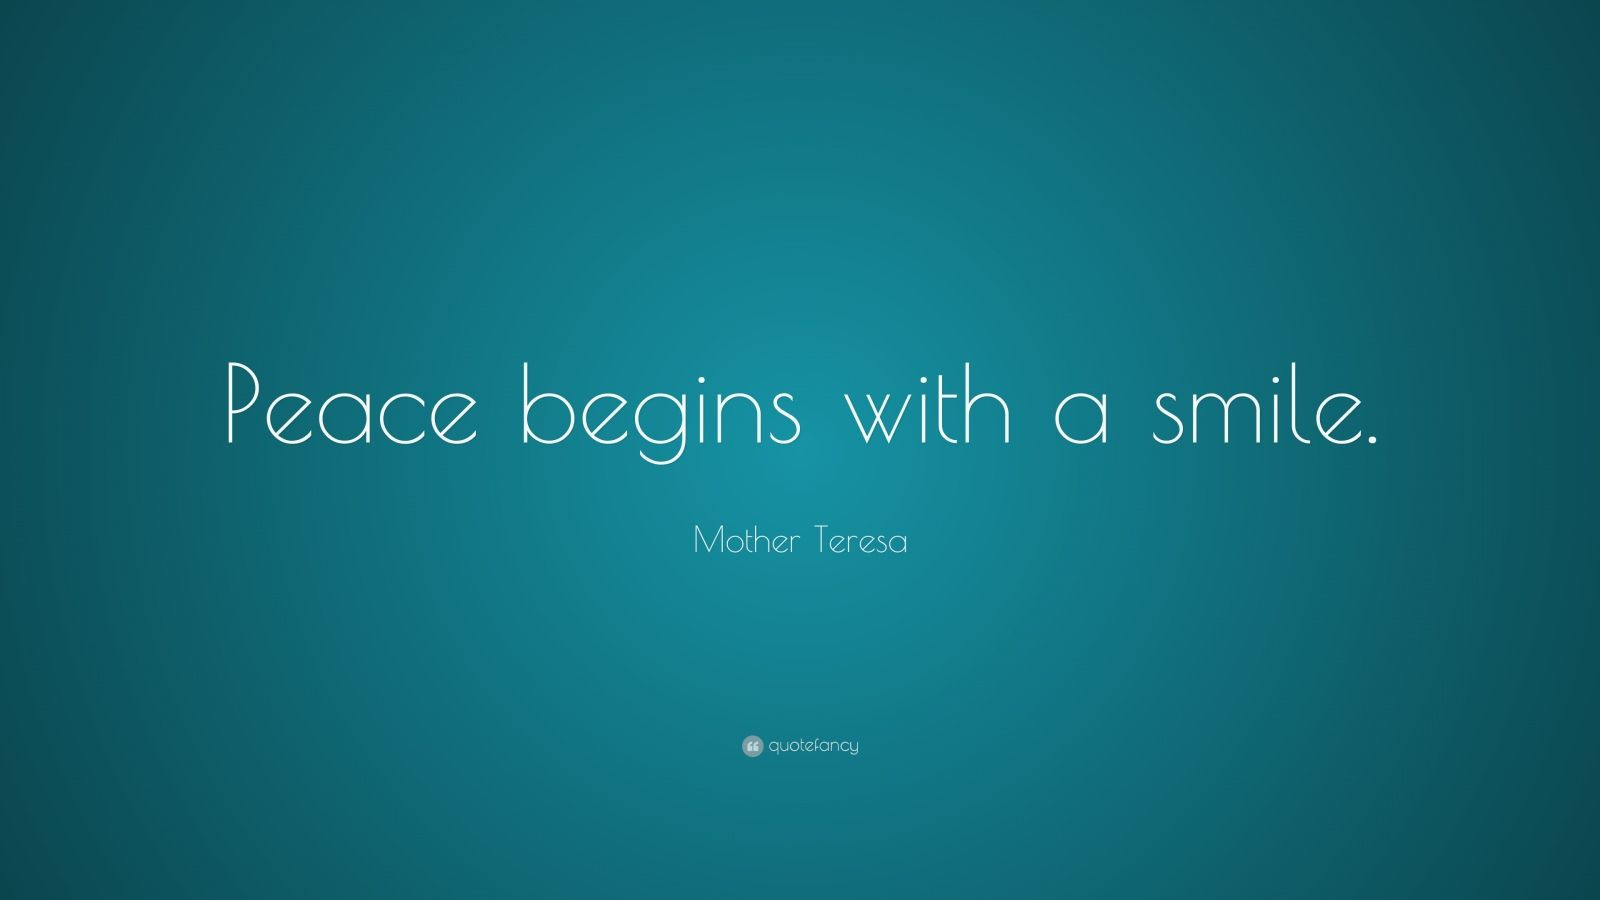 Mother Teresa Peace Quote  Mother Teresa Quotes 12 wallpapers Quotefancy